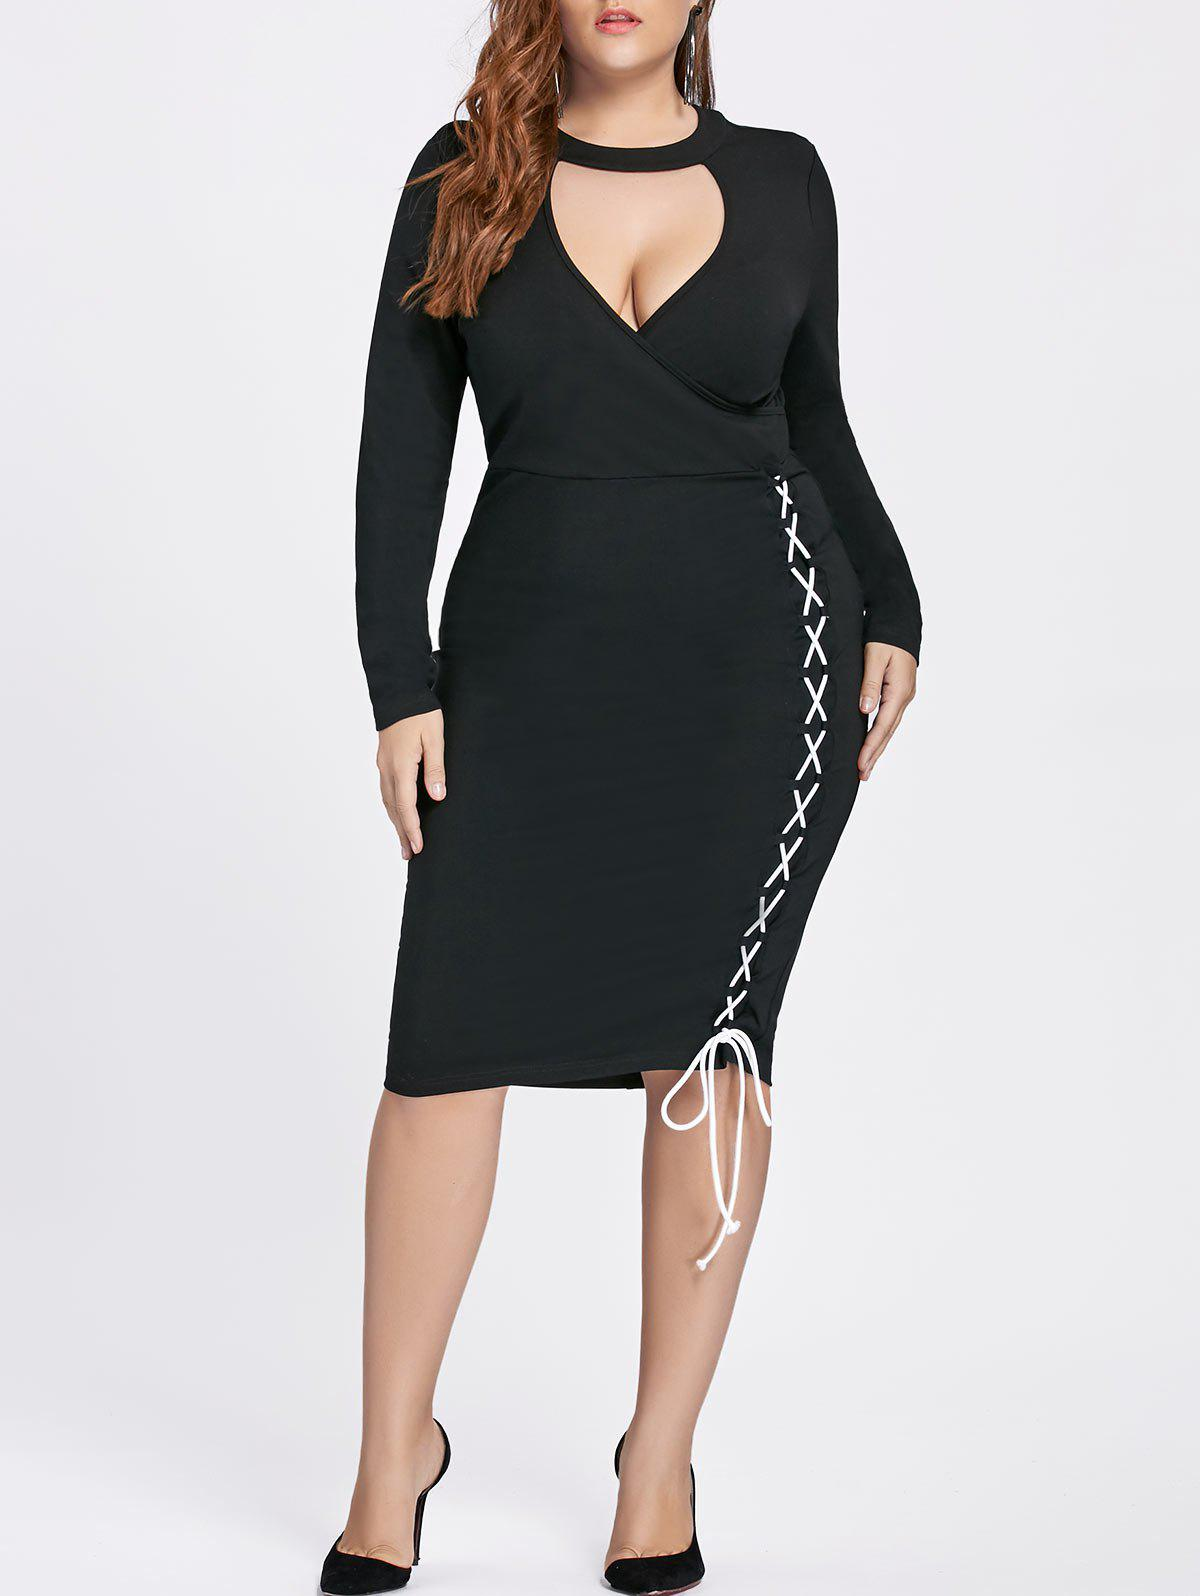 Shops Lace-up Bodycon Plus Size Fitted Choker Dress